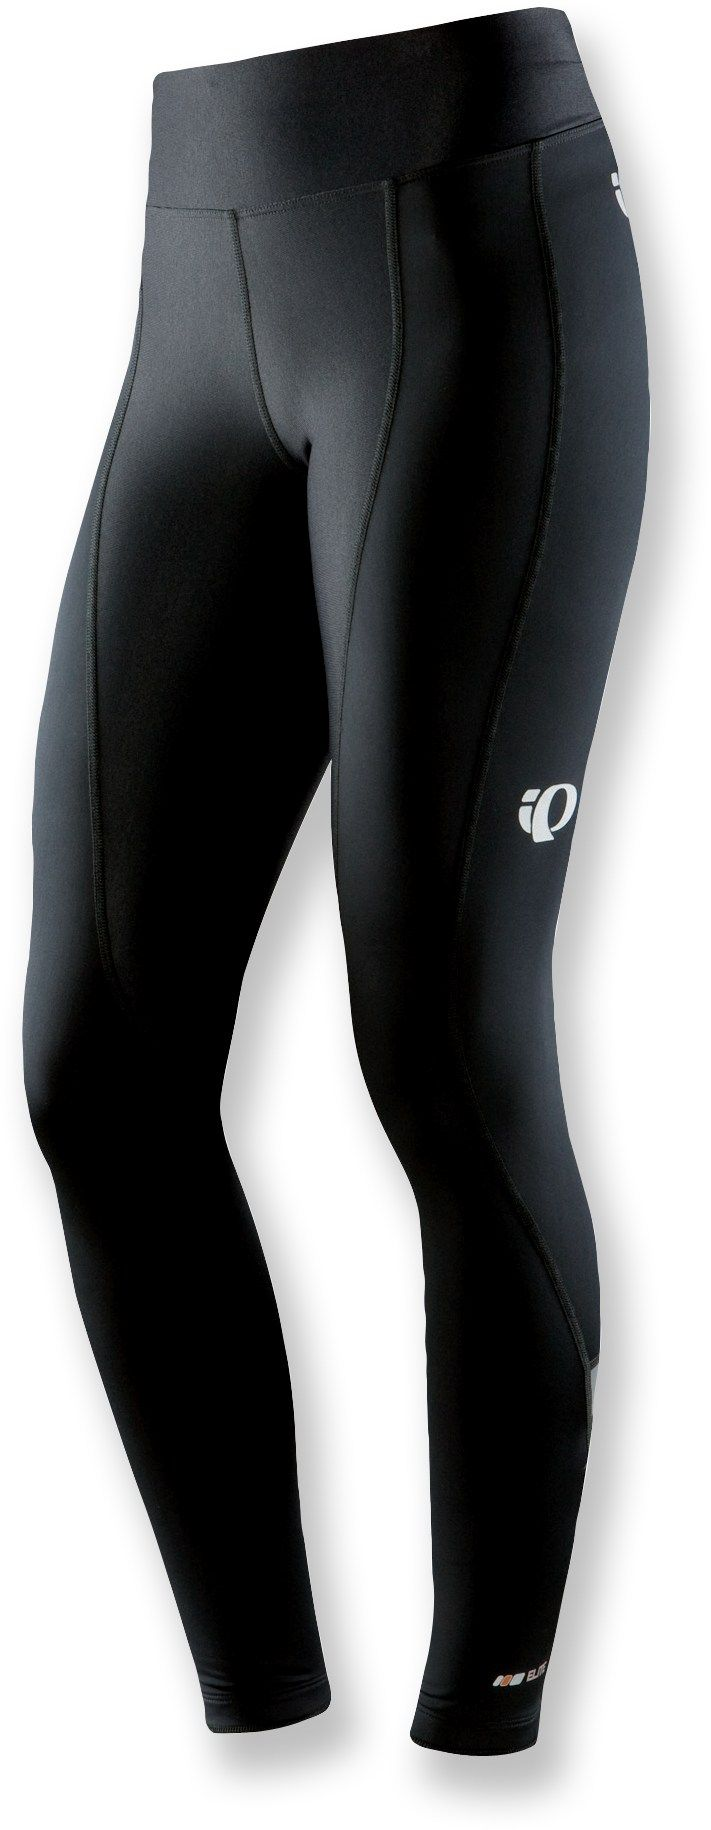 Pearl Izumi ELITE Thermal Cycle Tight - Women's. $93 on sale